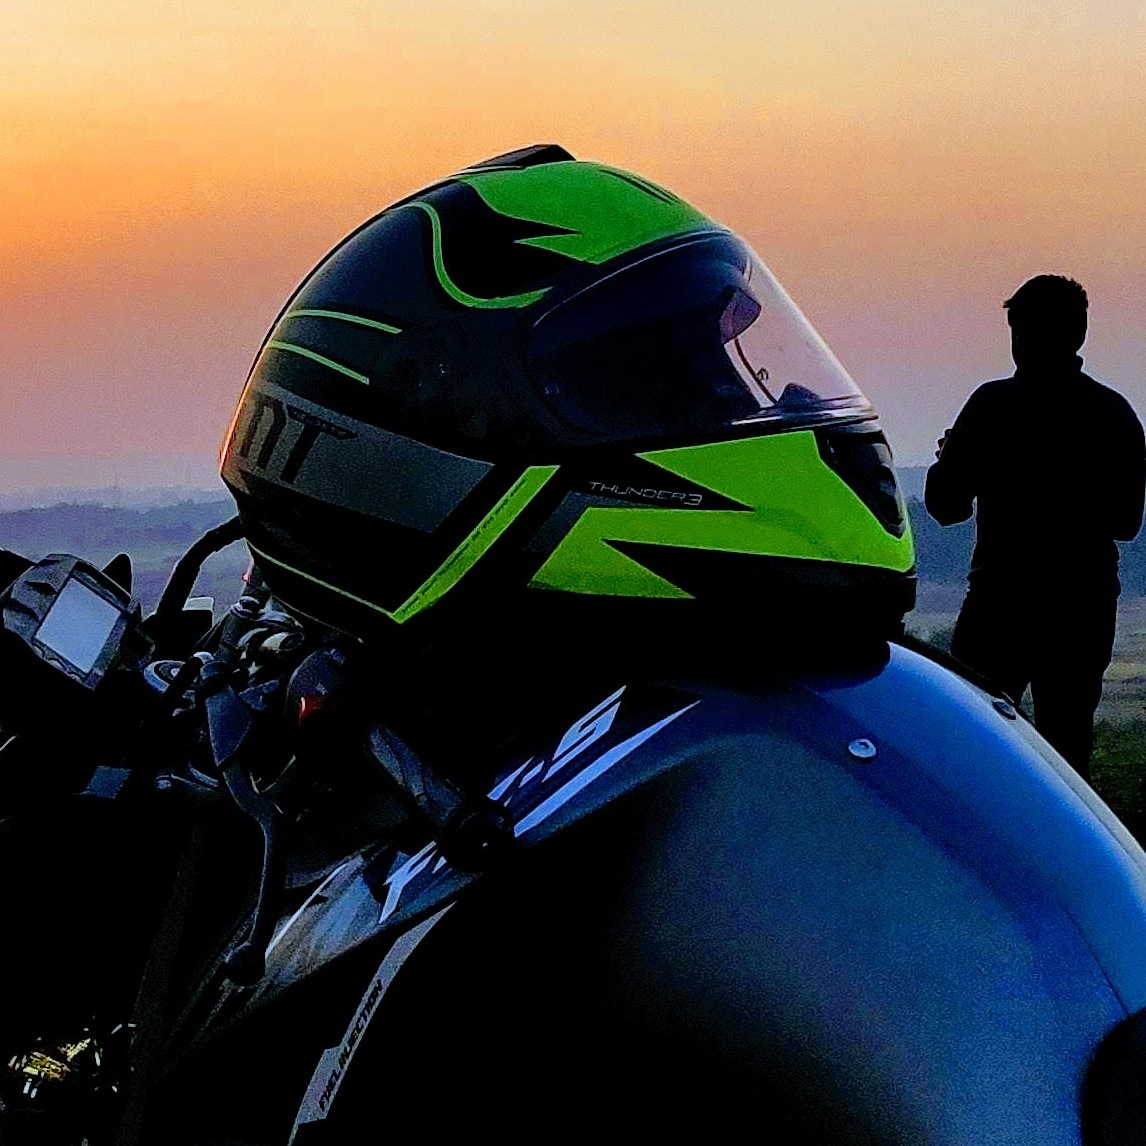 Fzs Fi bike and MT helmet In sunset by by_the_way_23